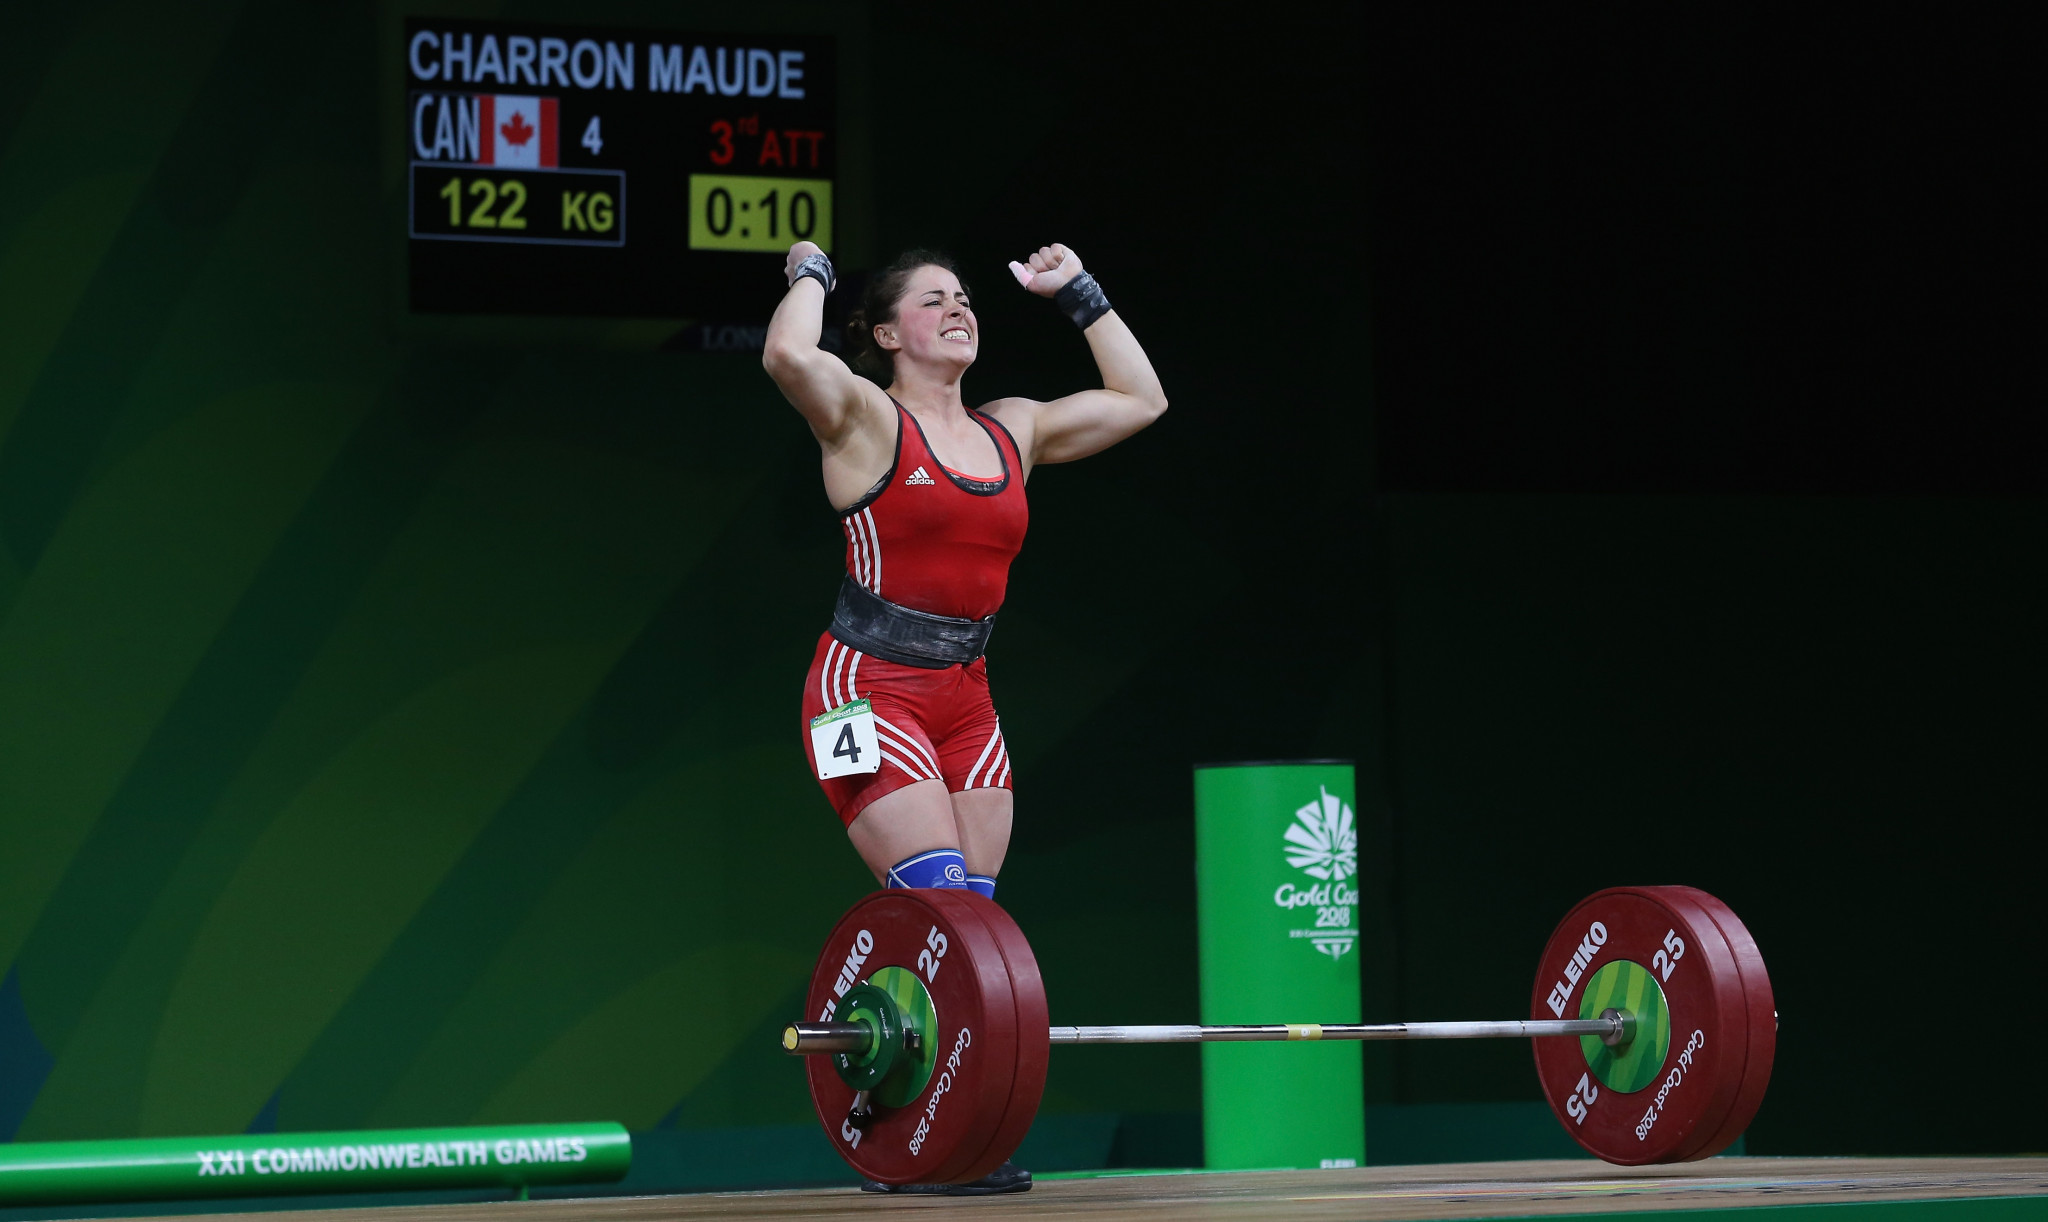 Canada's Charron claims Gold Coast 2018 weightlifting gold before breaking Commonwealth Games clean and jerk record